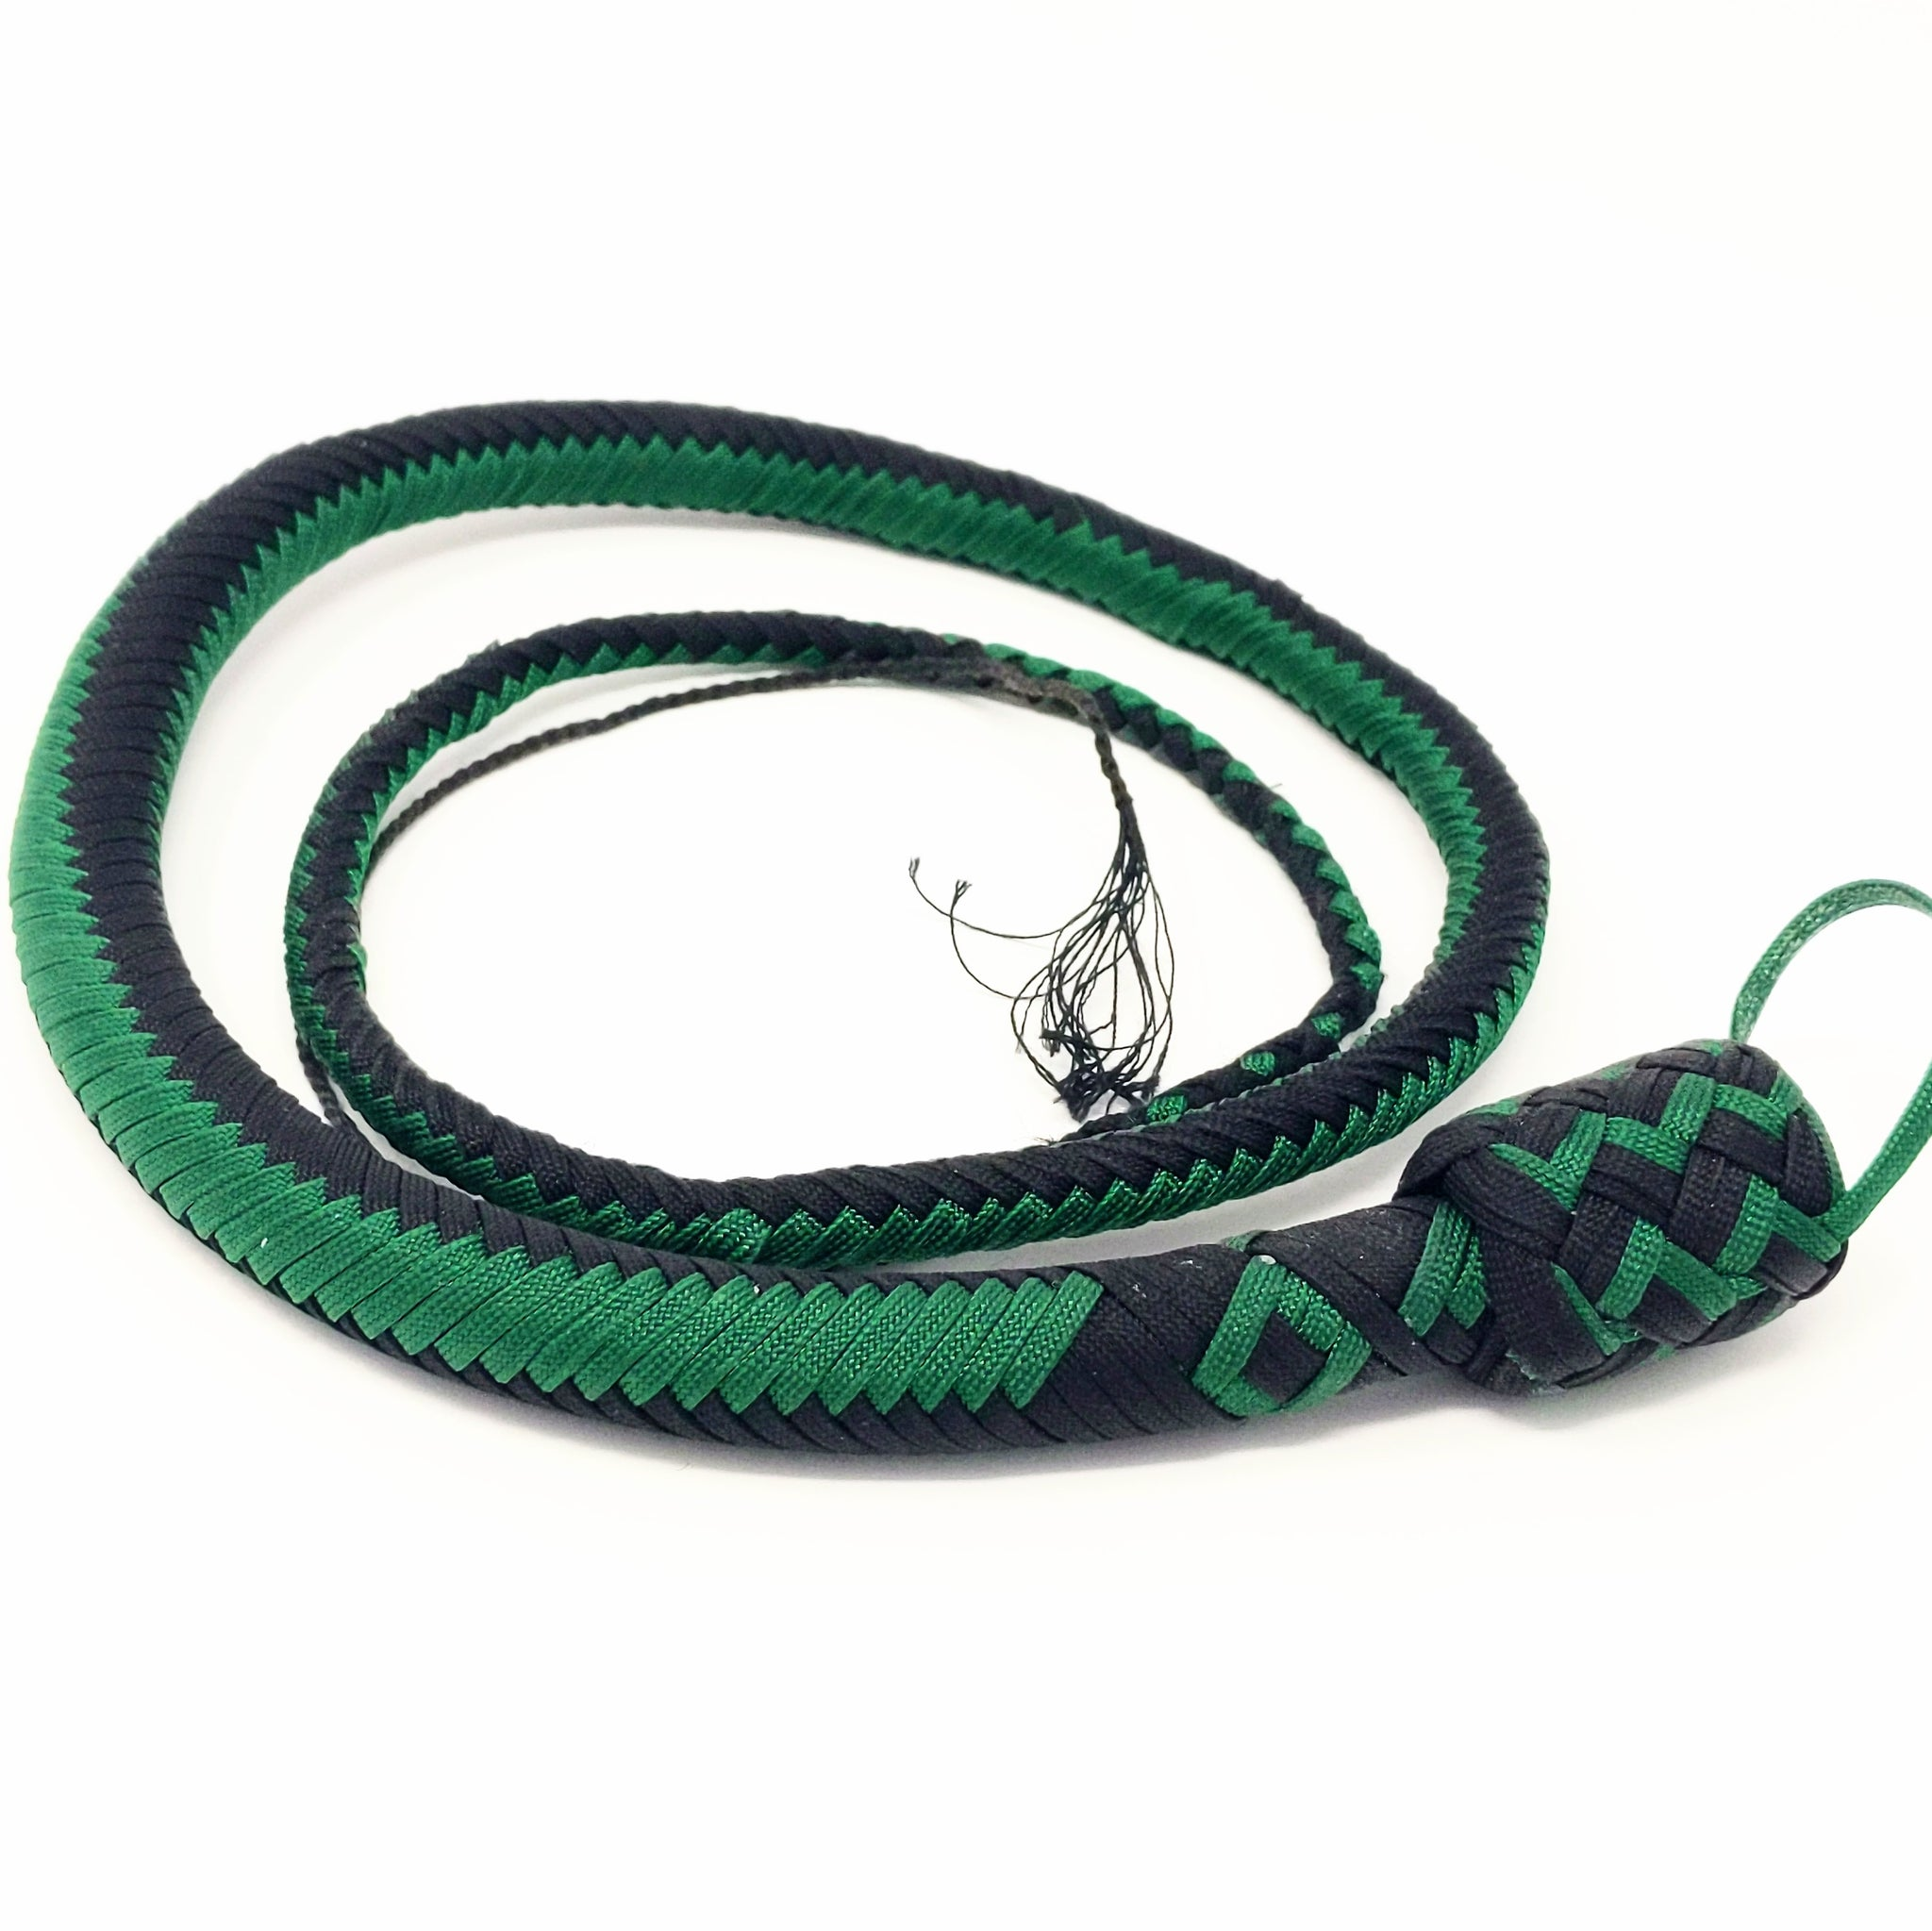 Snake Whip -Signal in Whipmaker Cord or Paracord